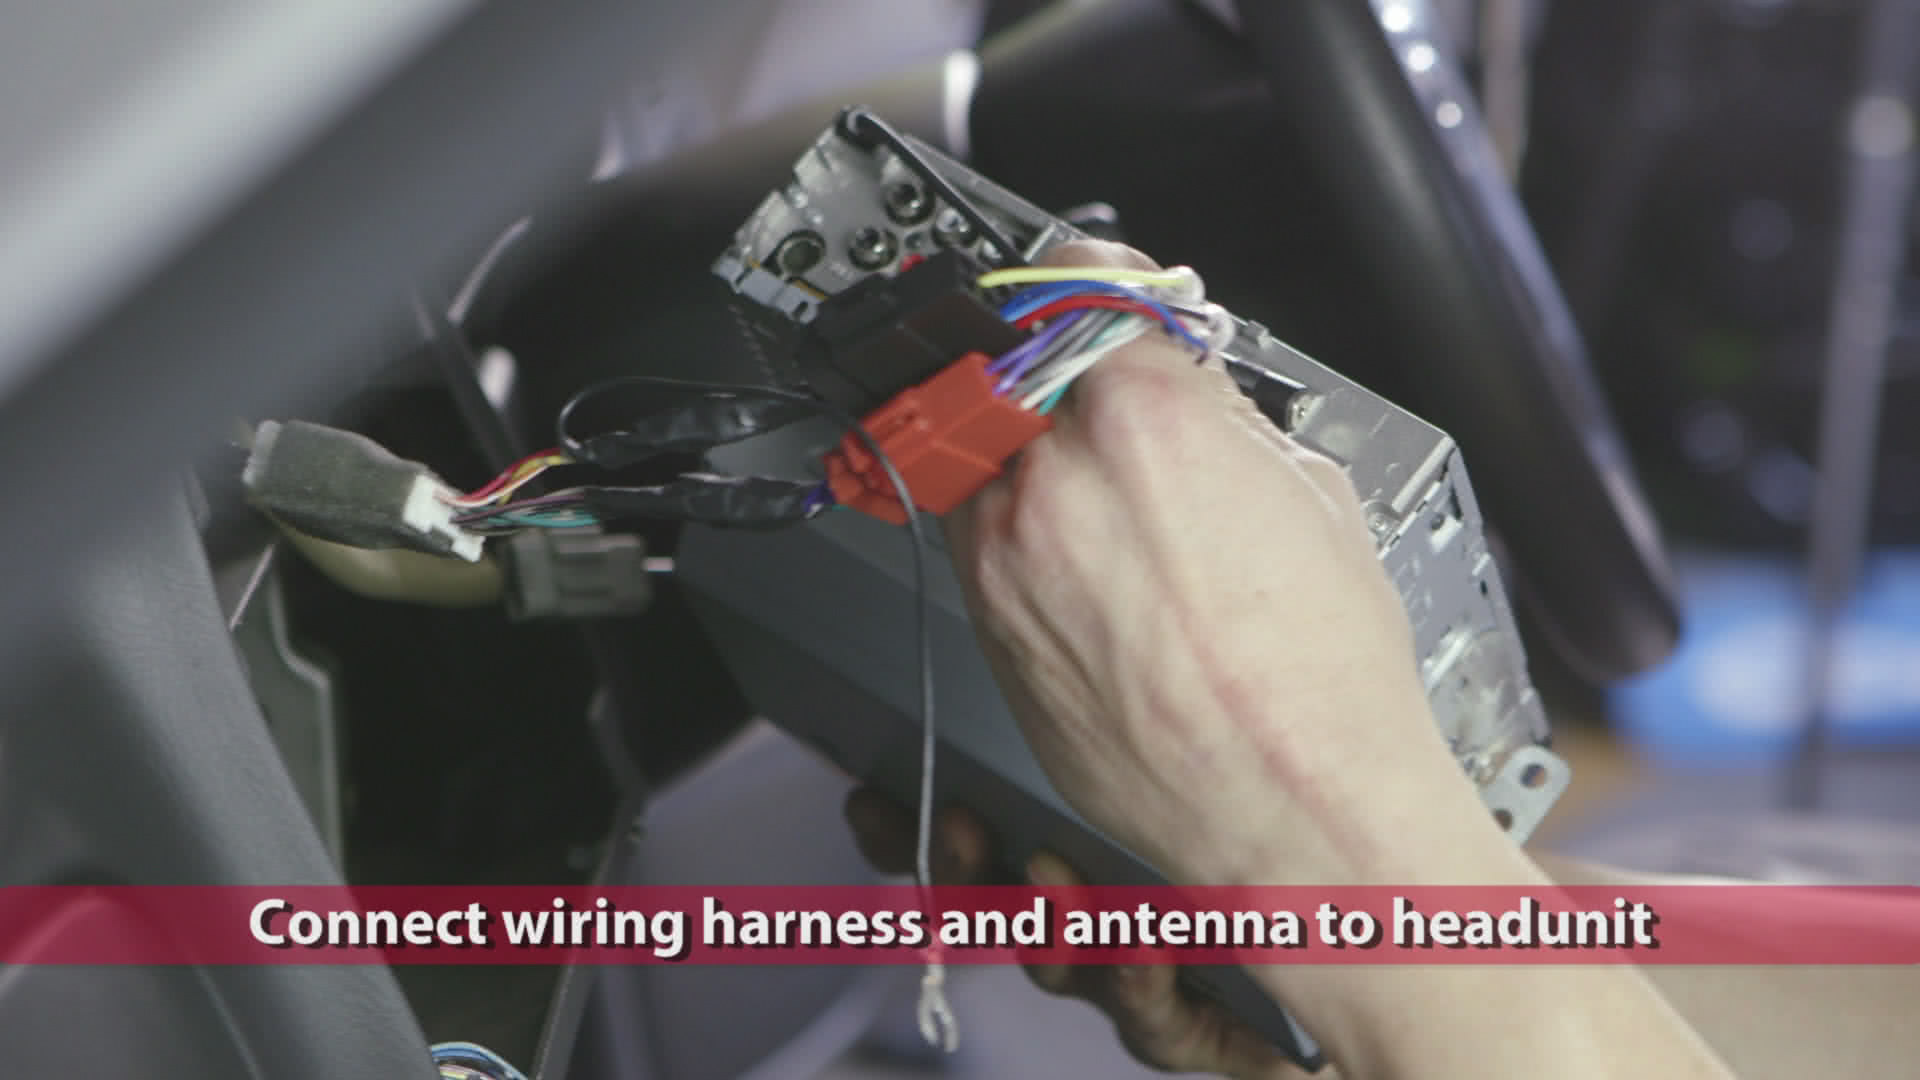 Installing A Headunit Subaru Subwoofer Wiring Harness Connect You Prepared Earlier And Plug In The Antenna